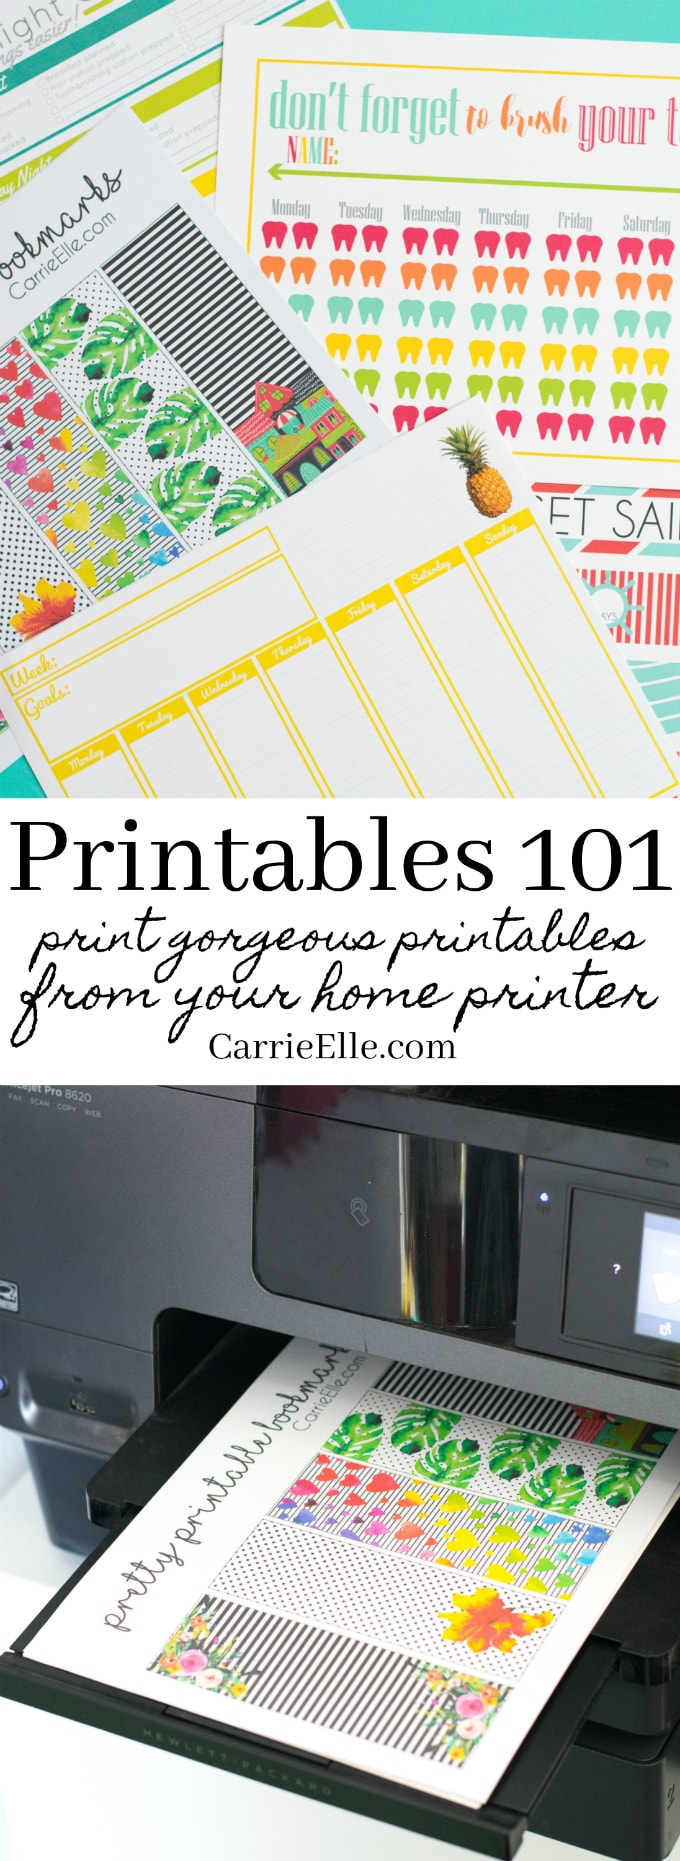 How to Print Printables